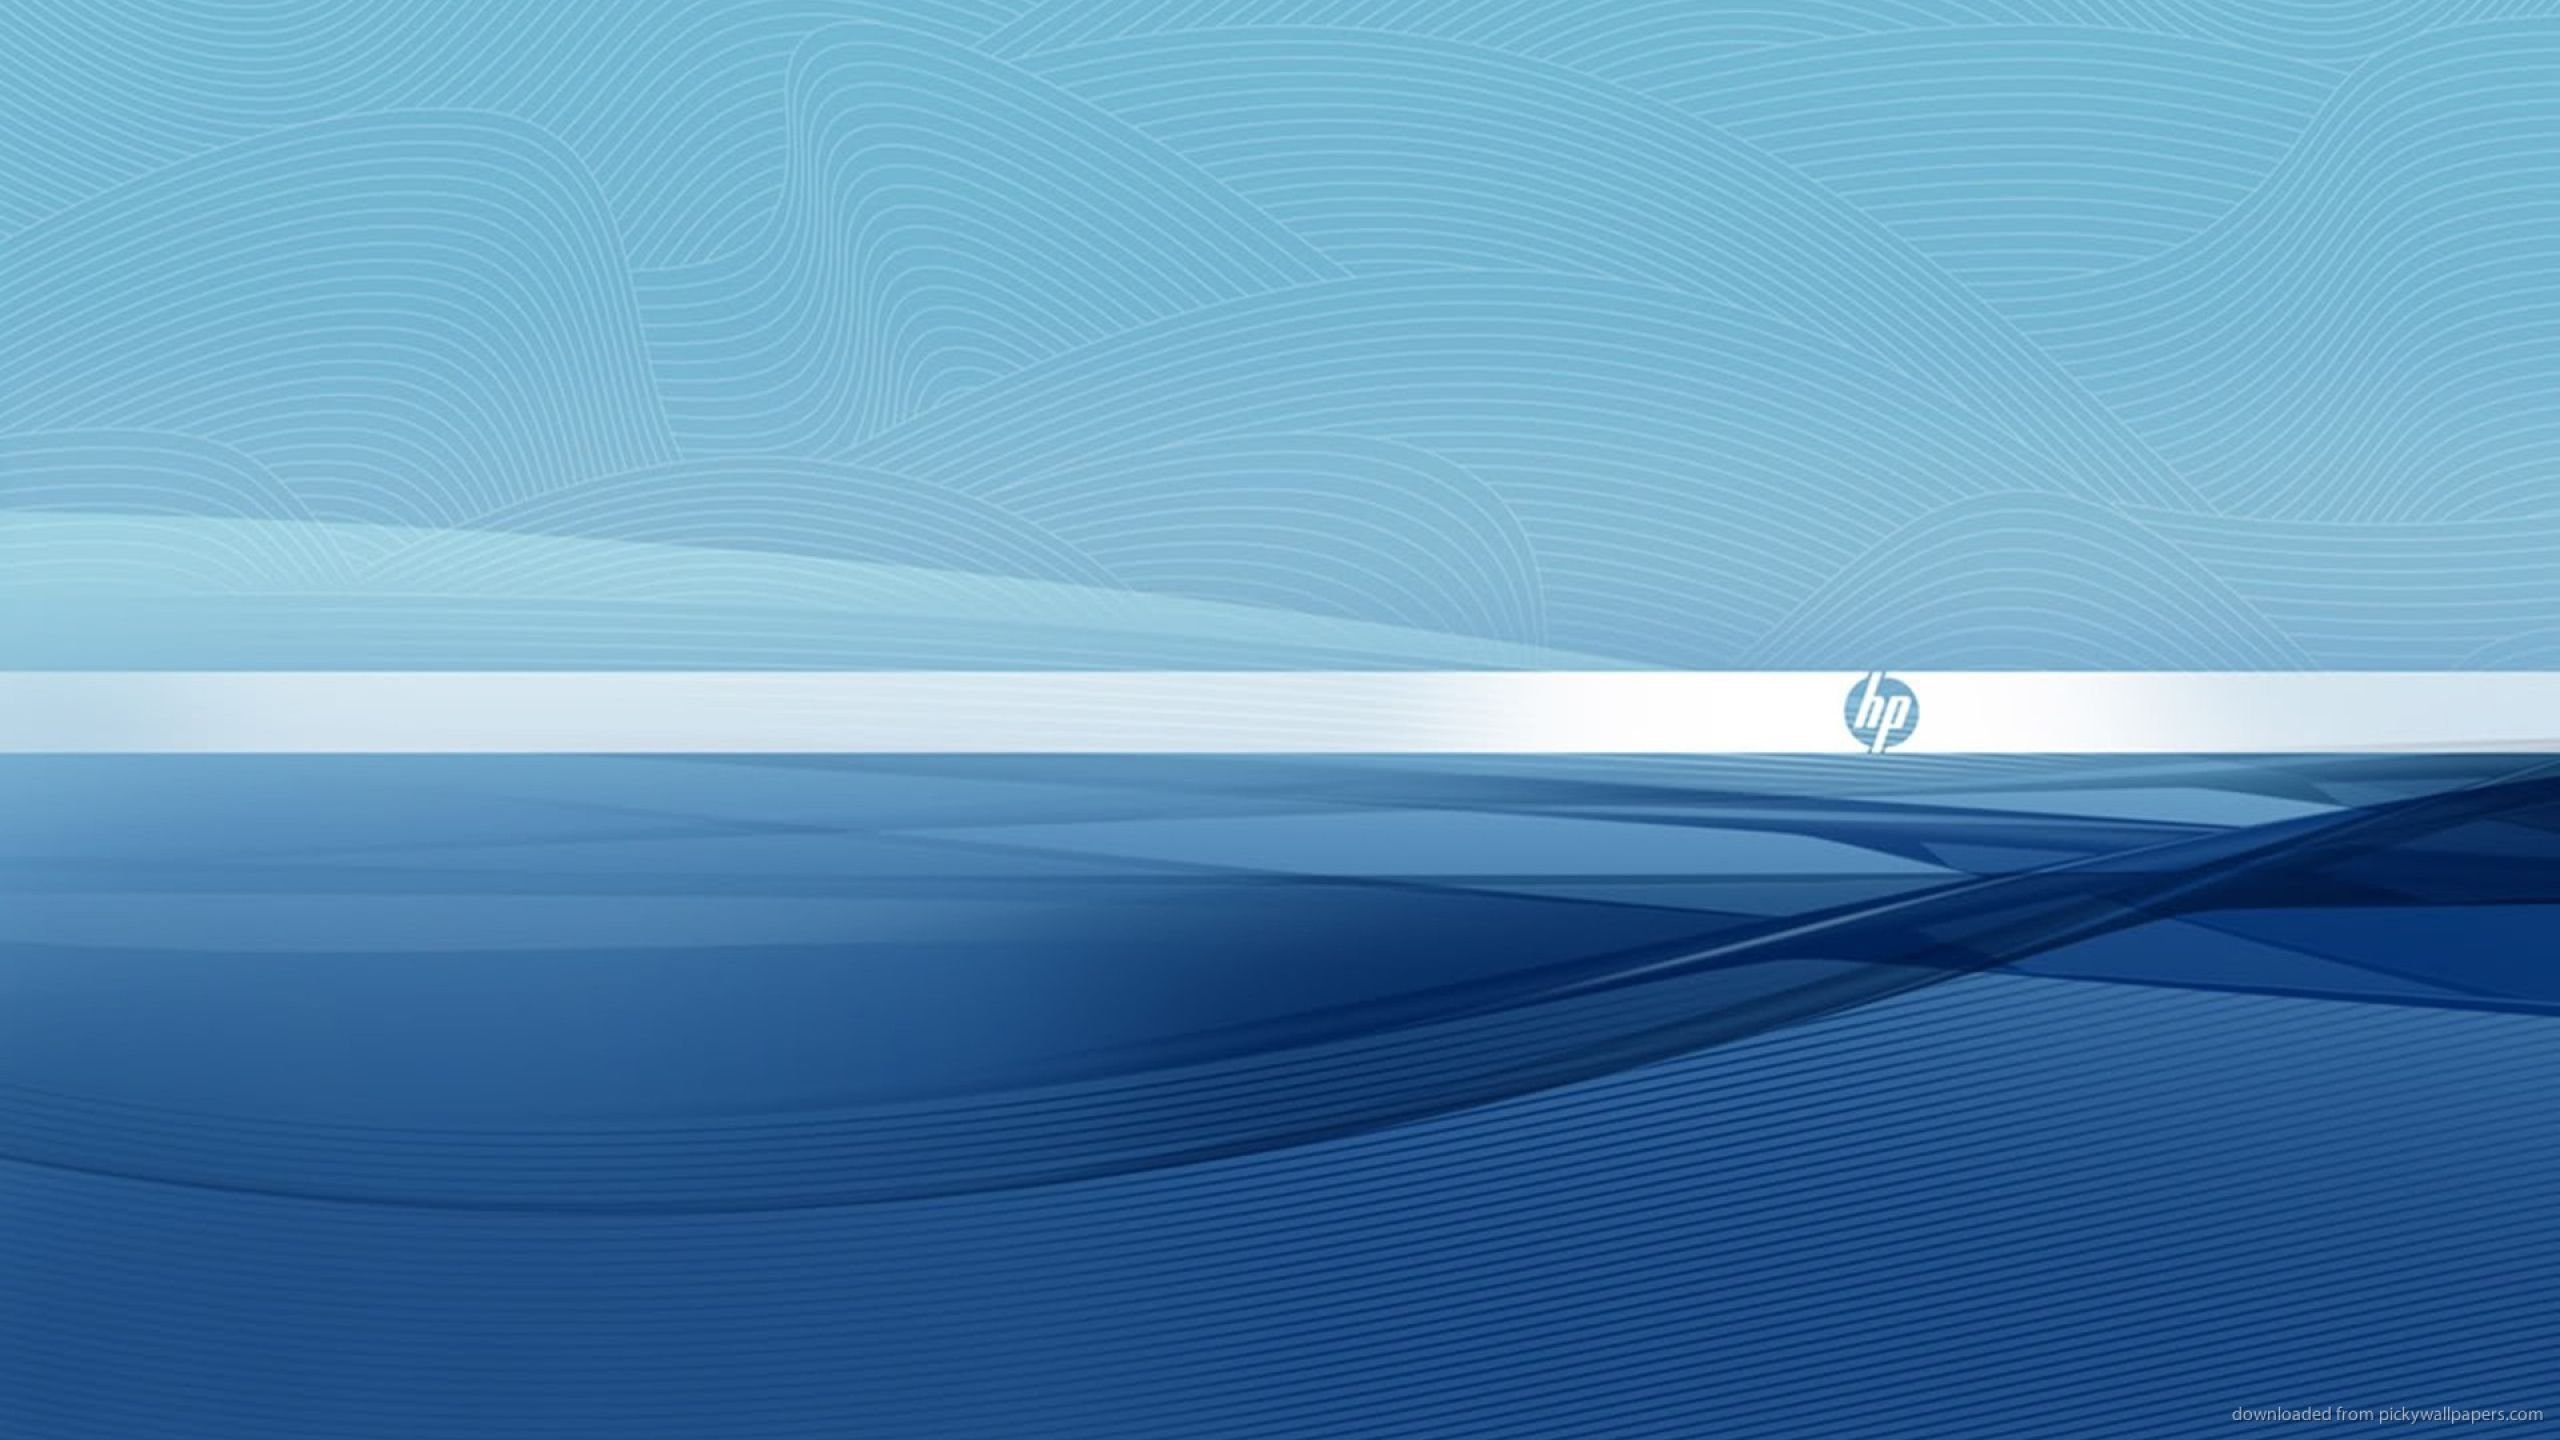 hp wallpapers themes 038